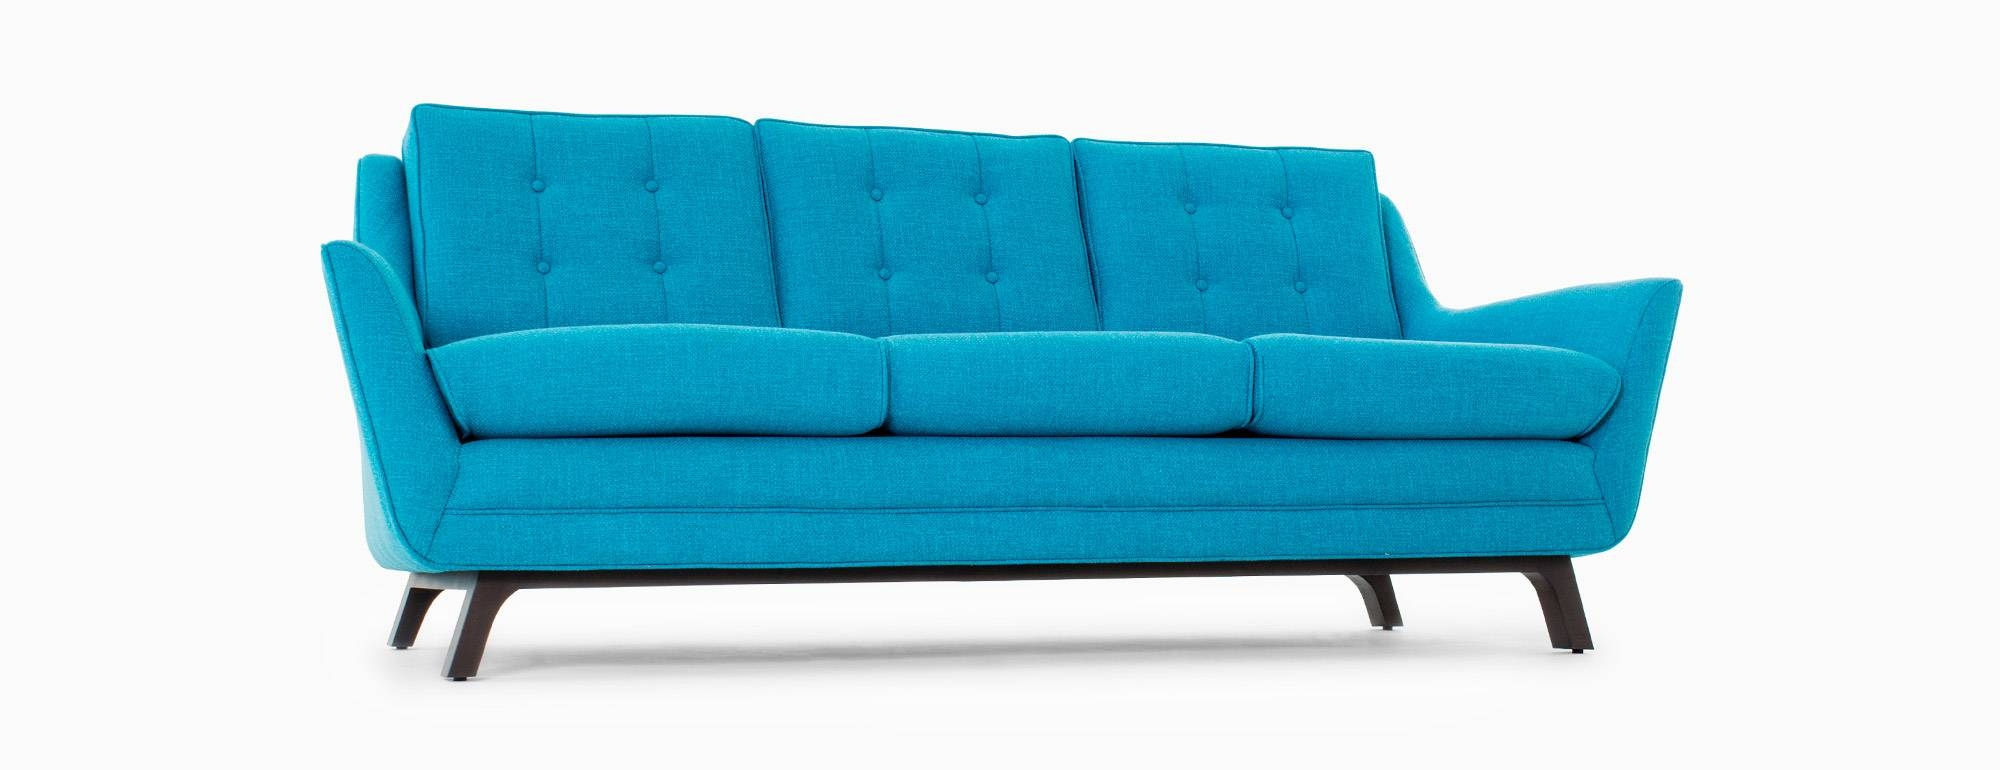 Eastwood Sofa | Joybird regarding Blue Sofa Chairs (Image 17 of 30)